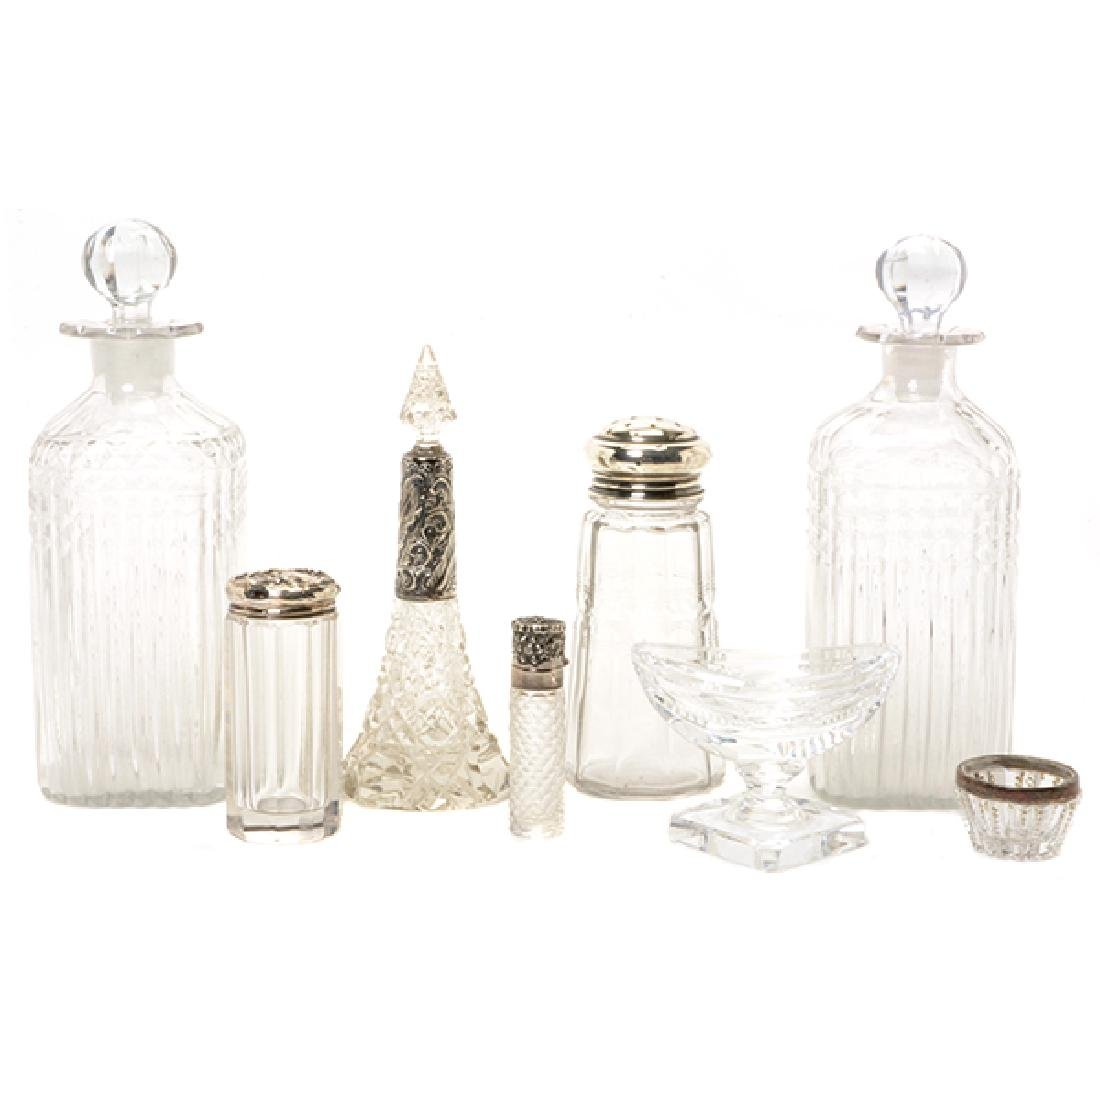 Collection of Anglo-Irish Crystal Table Articles